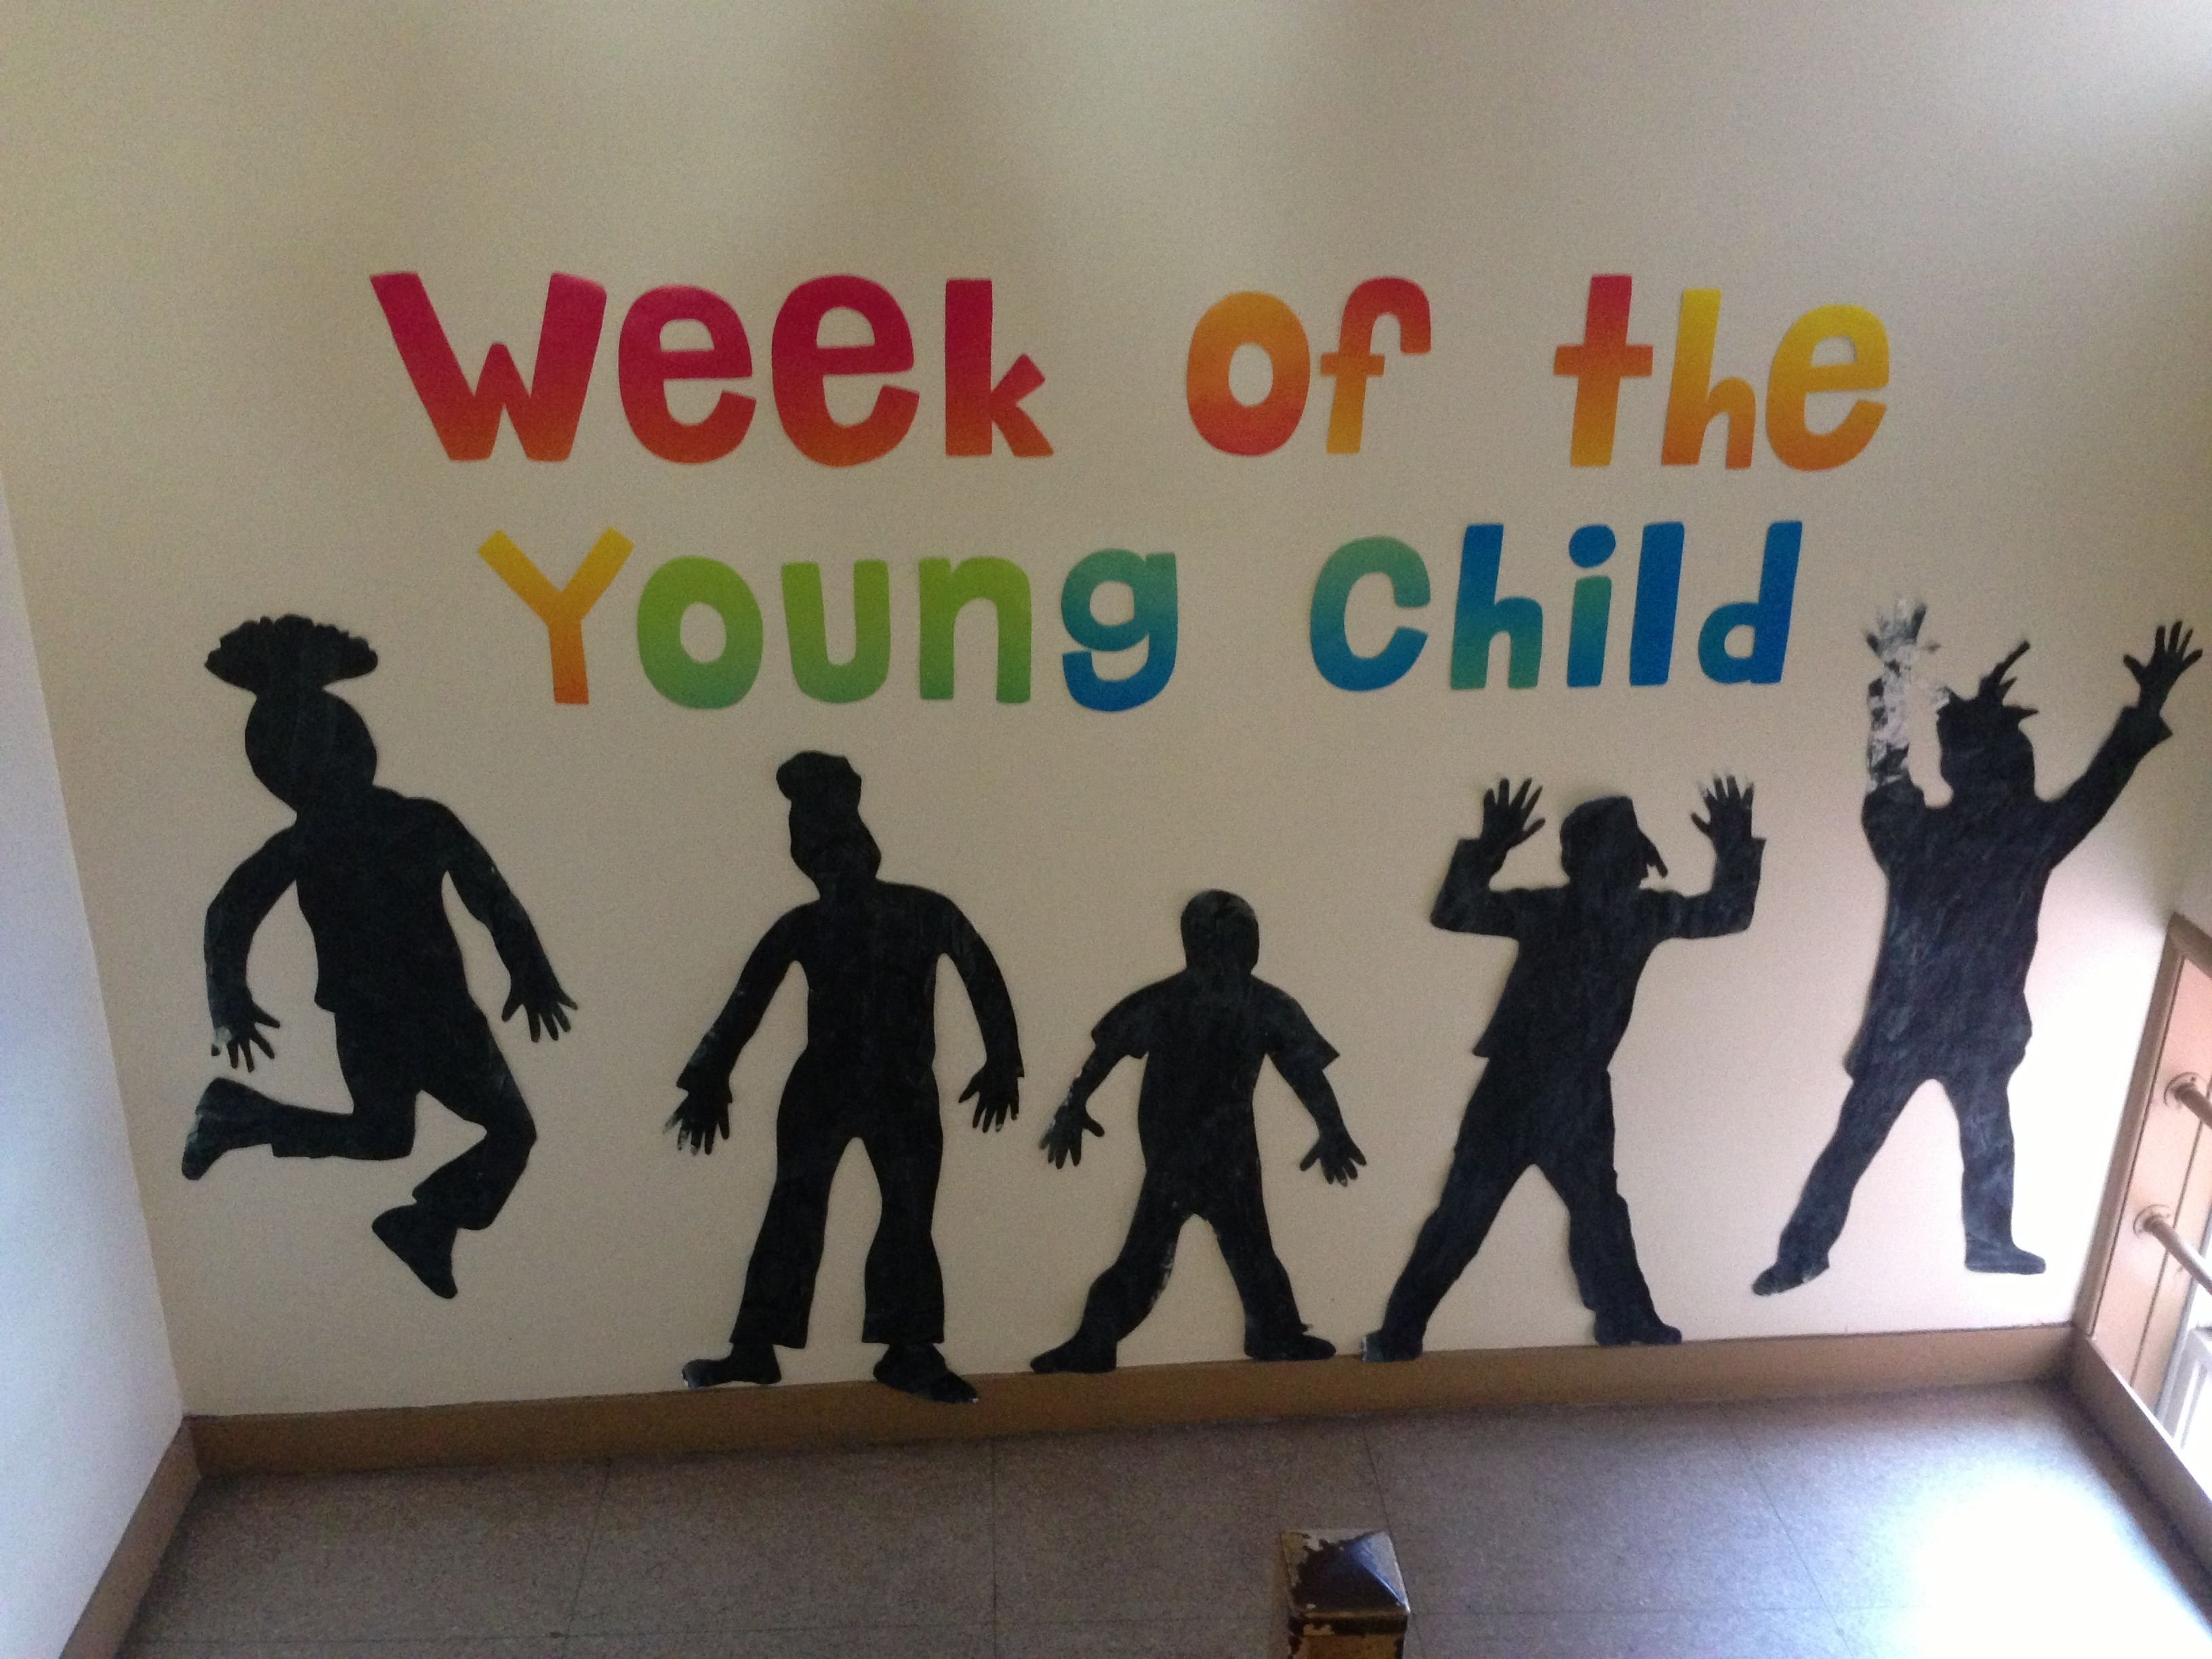 10 Lovely Week Of The Young Child Ideas week of the young child display preschool life pinterest